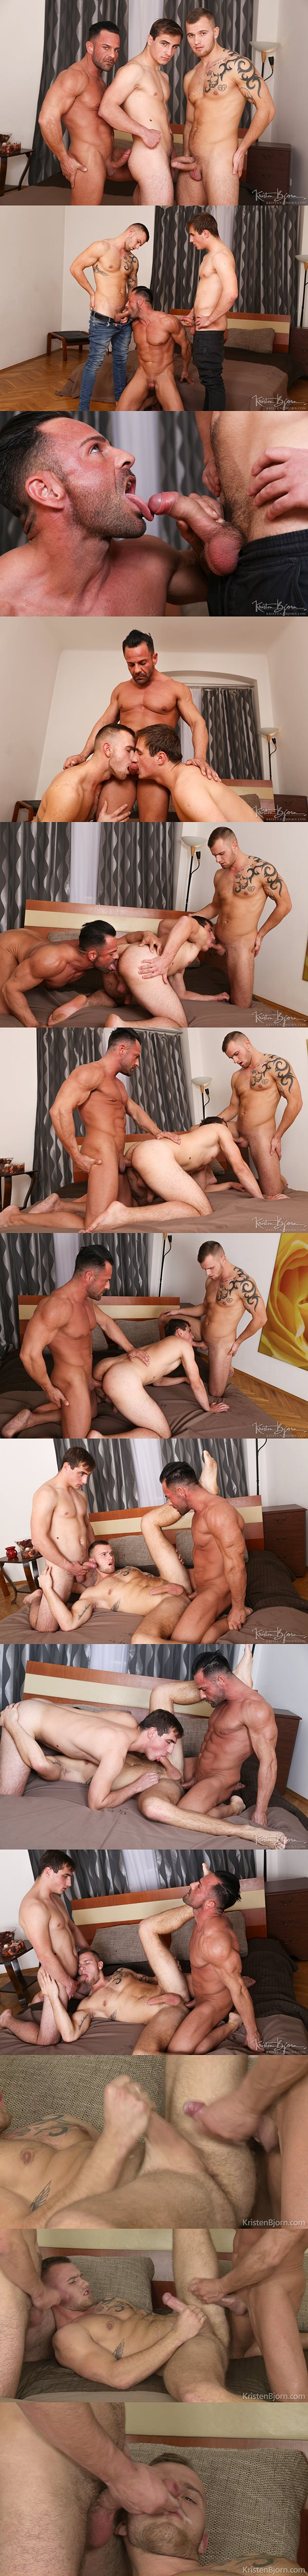 Macho daddy Alex Brando barebacks Alex Stan and Vaclav Chovanec in Strangers in Prague 3 at Kristenbjorn 02